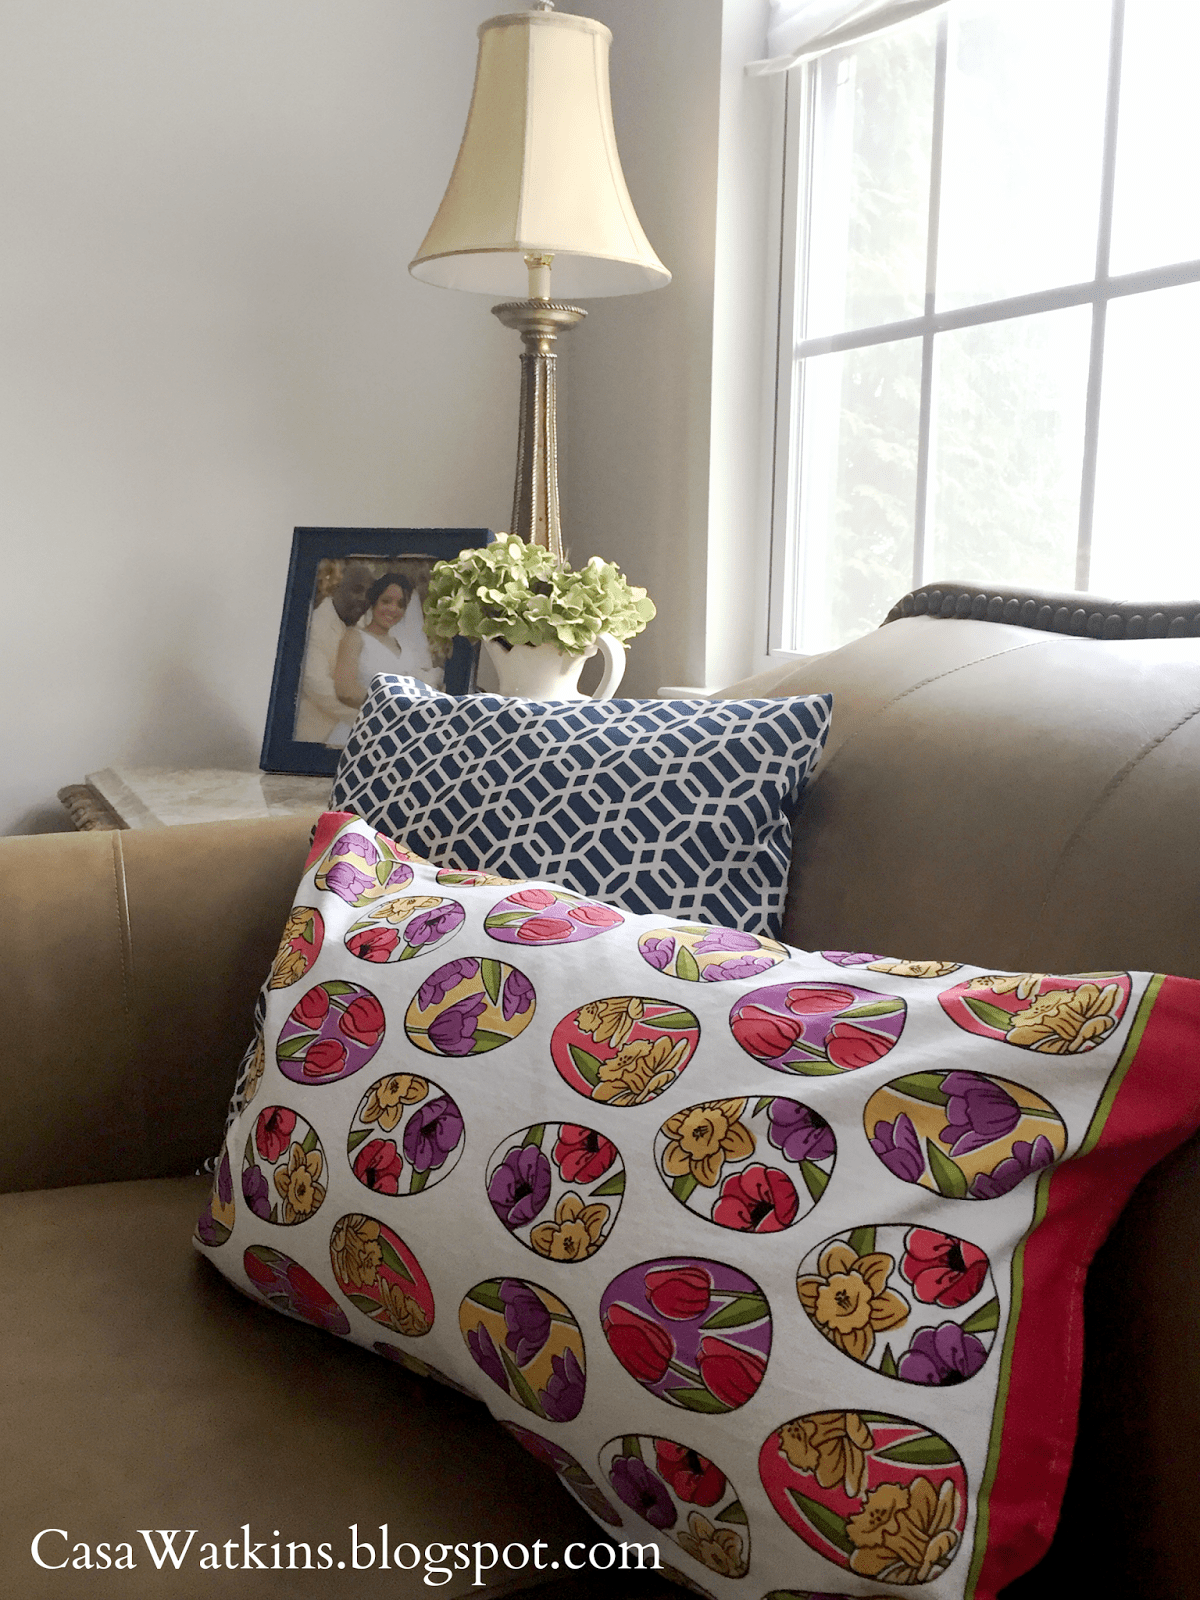 No Sew Easter Pillow Made of Kitchen Towels  Casa Watkins